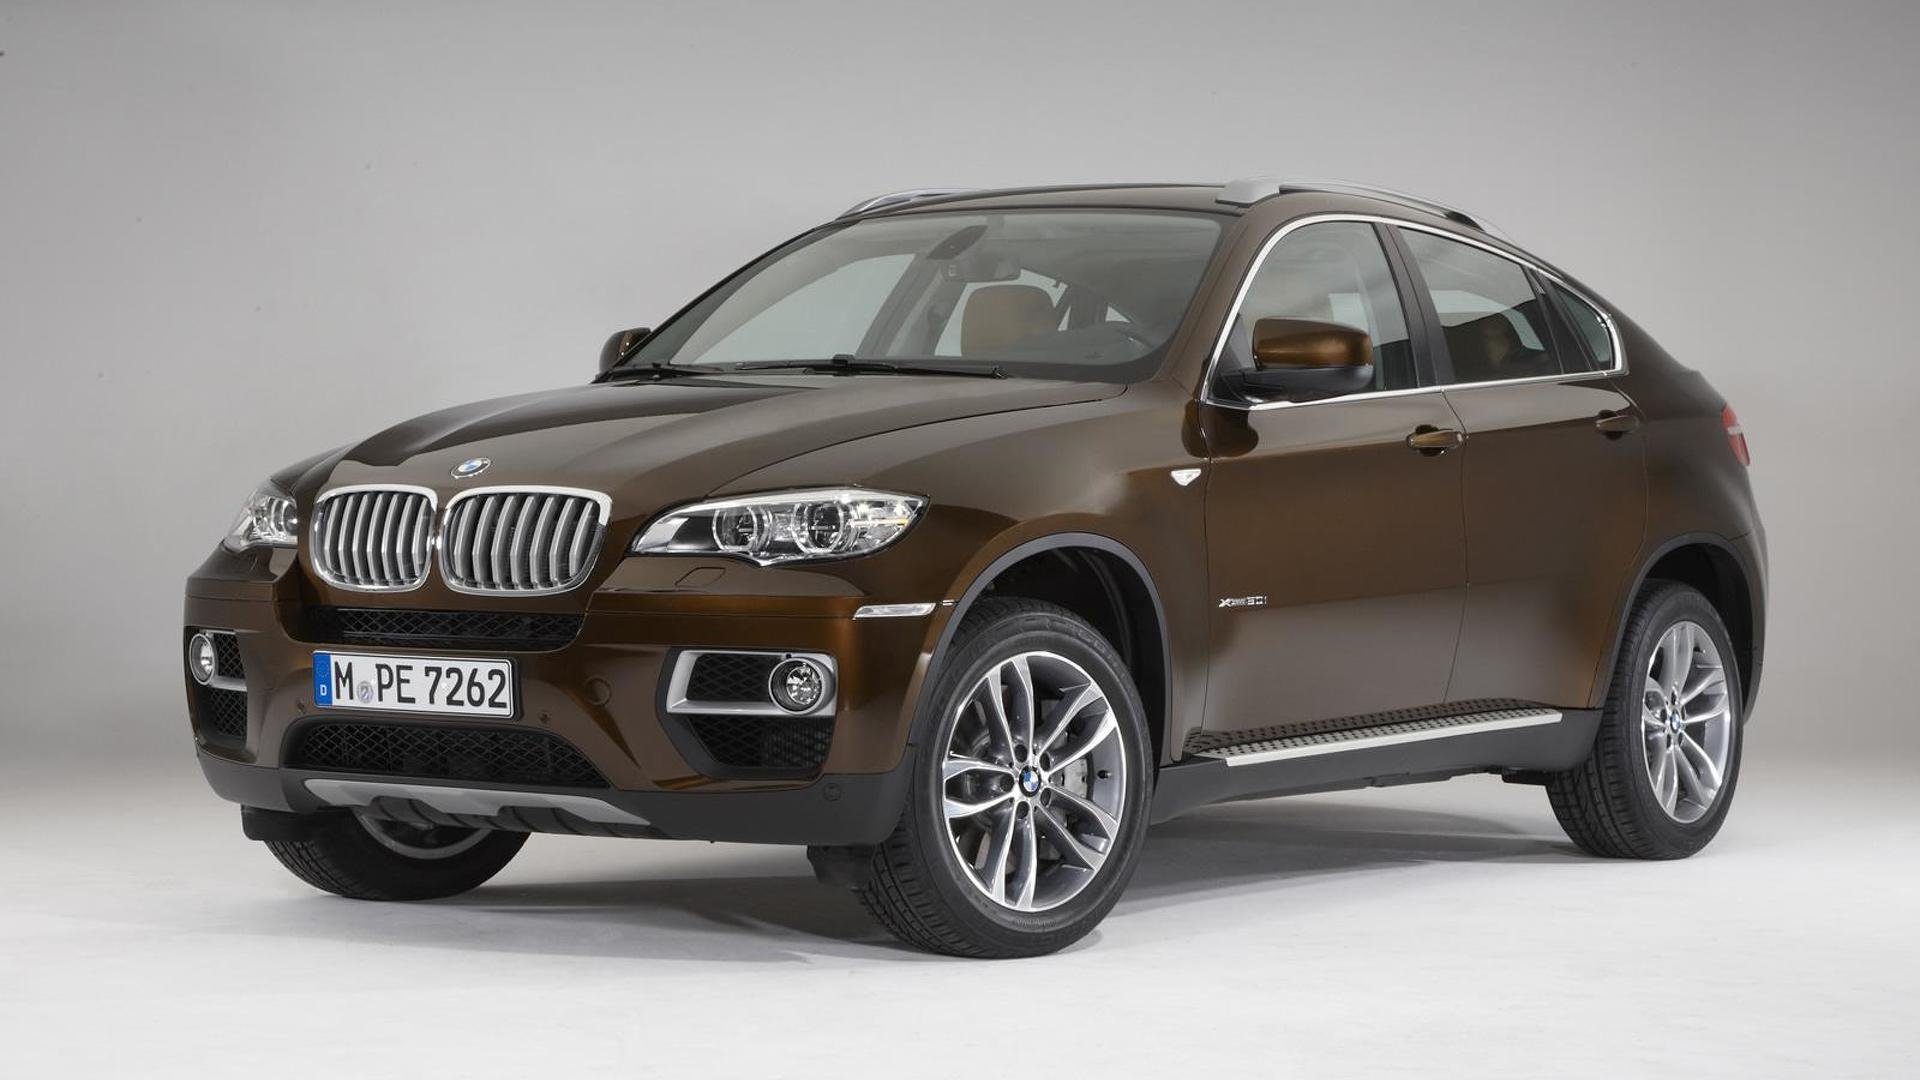 Worksheet. Drunk driver offers police officer BMW X6 as bribe